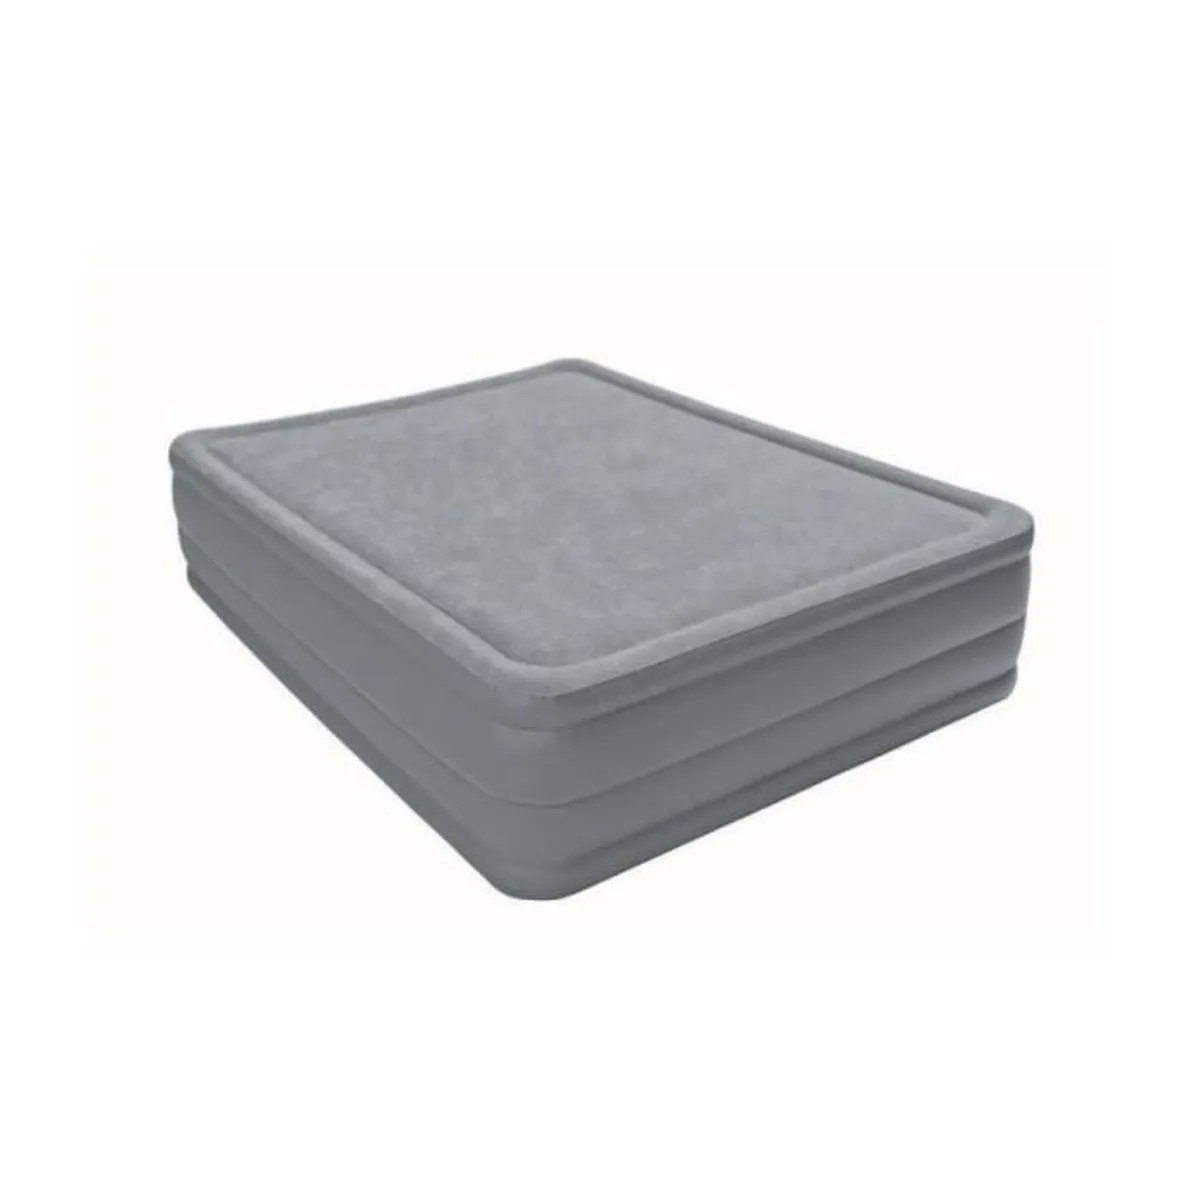 Matelas Intex 2 Places Matelas Gonflable Electrique Intex Foam Top Fiber Tech Visco 2